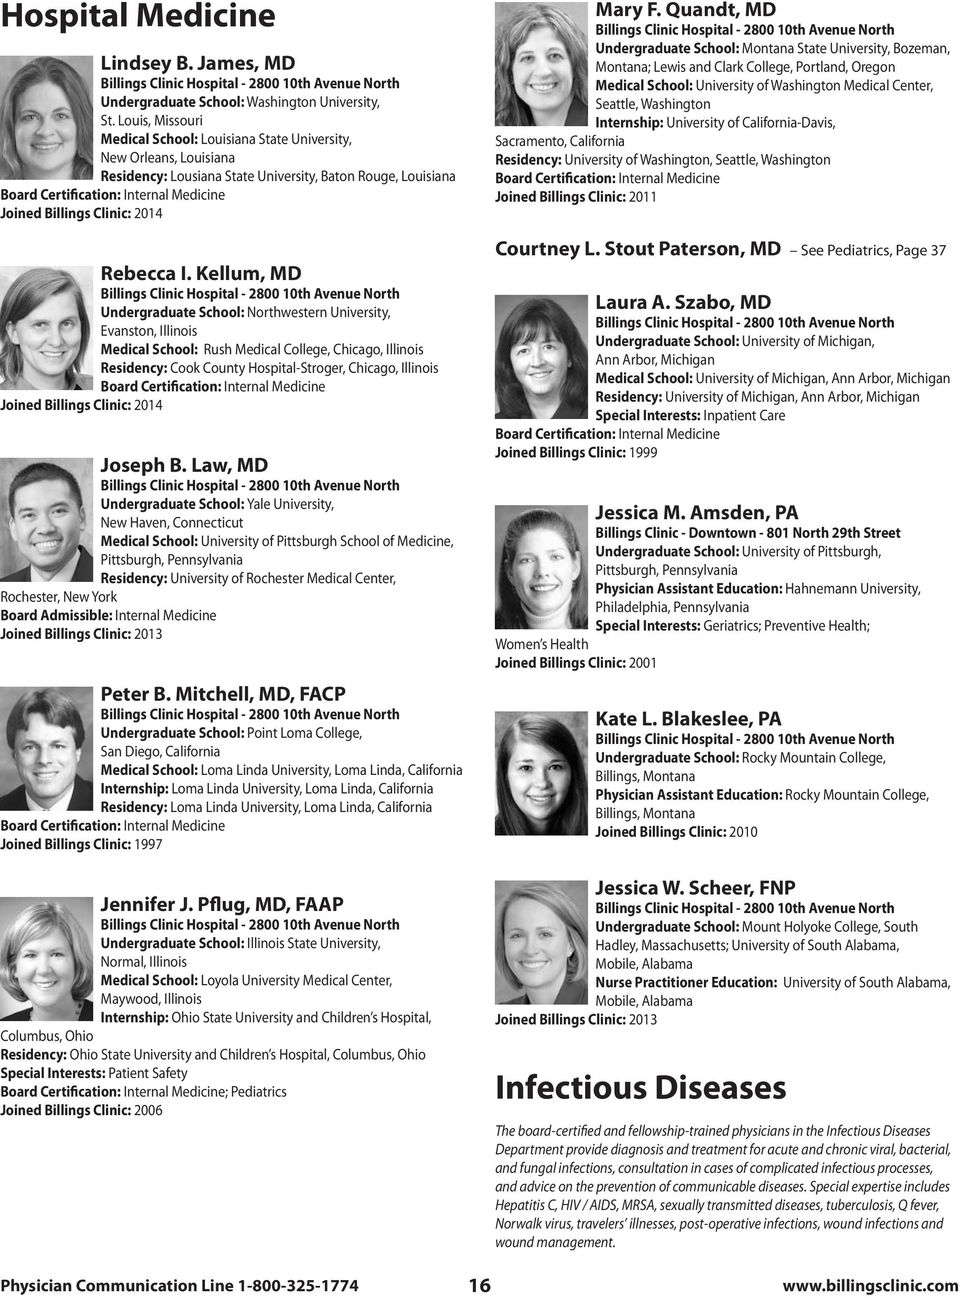 Front cover group photos: Left side, Billings Clinic